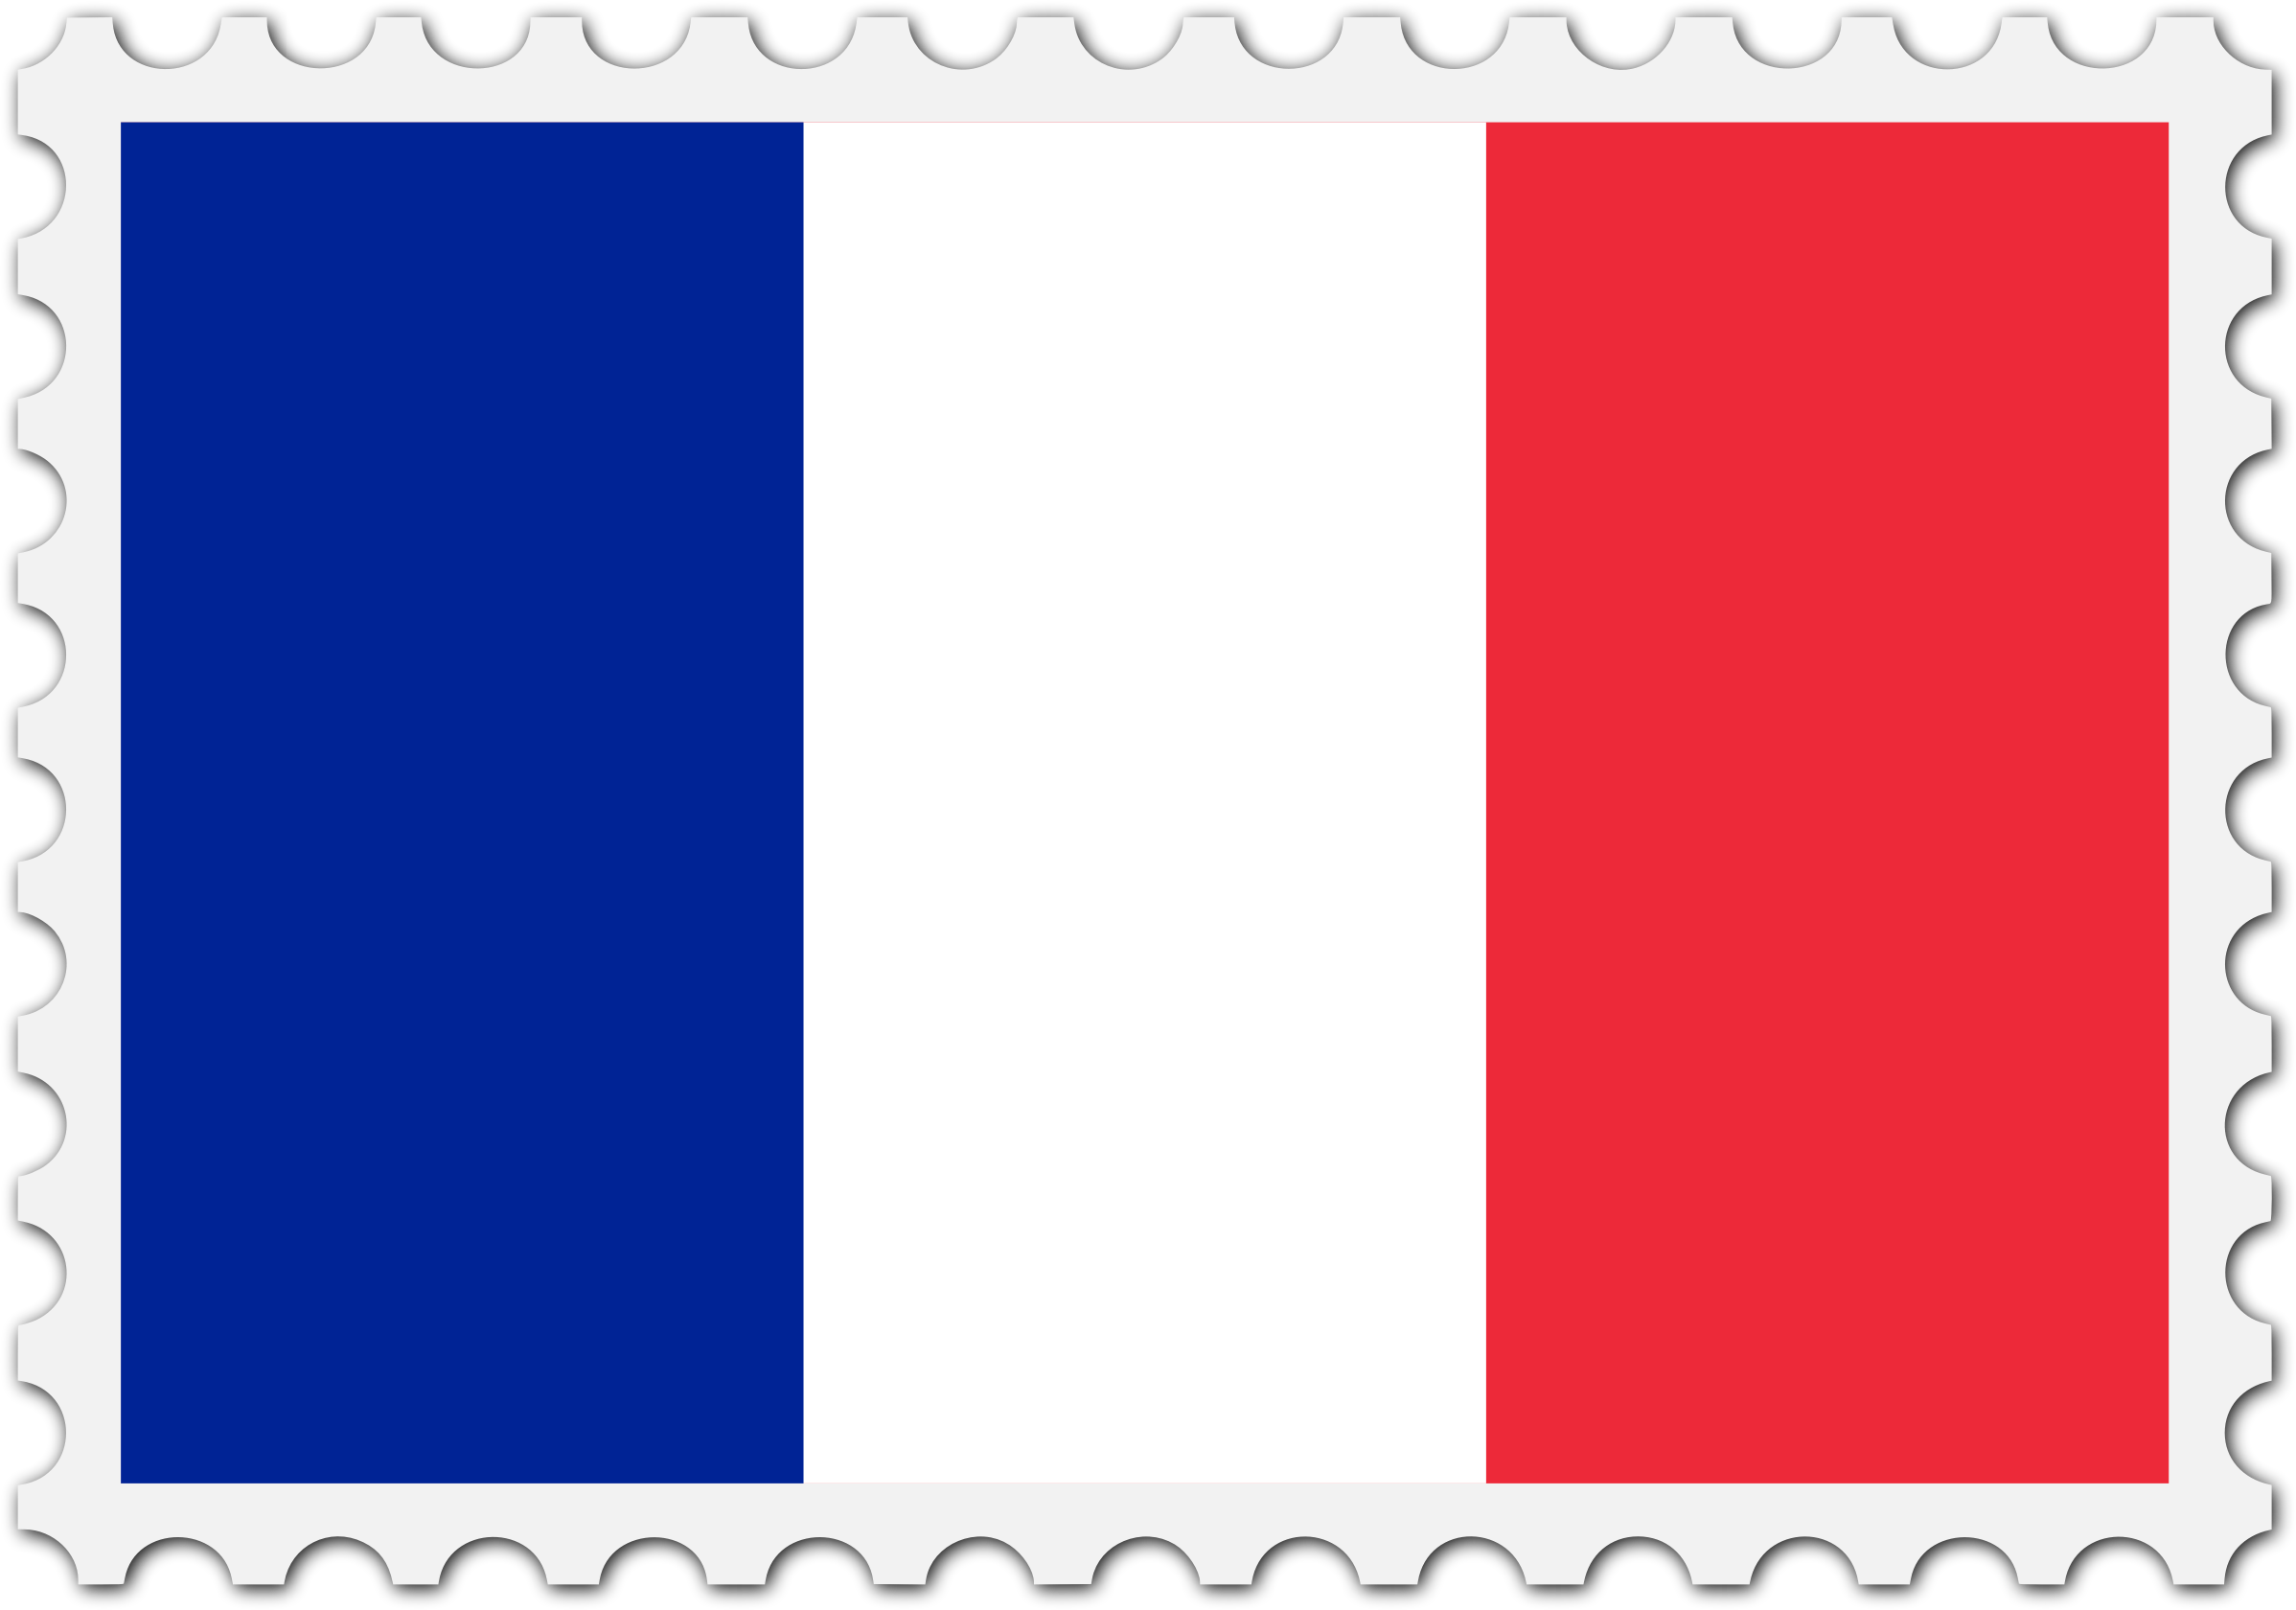 France flag stamp by Firkin